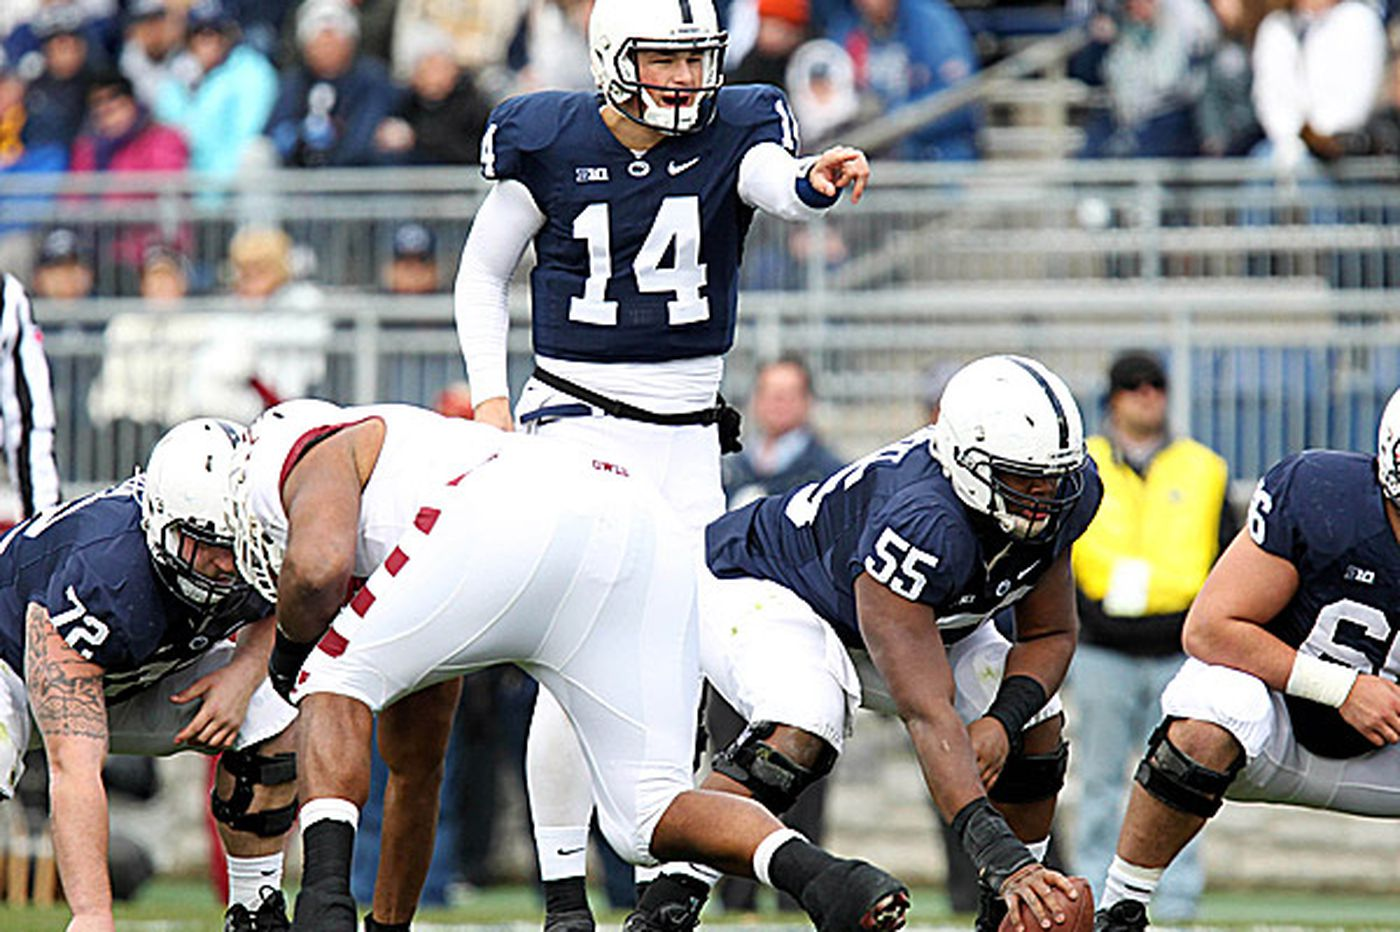 Penn State offensive coordinator: 'You've got to try to find a way'